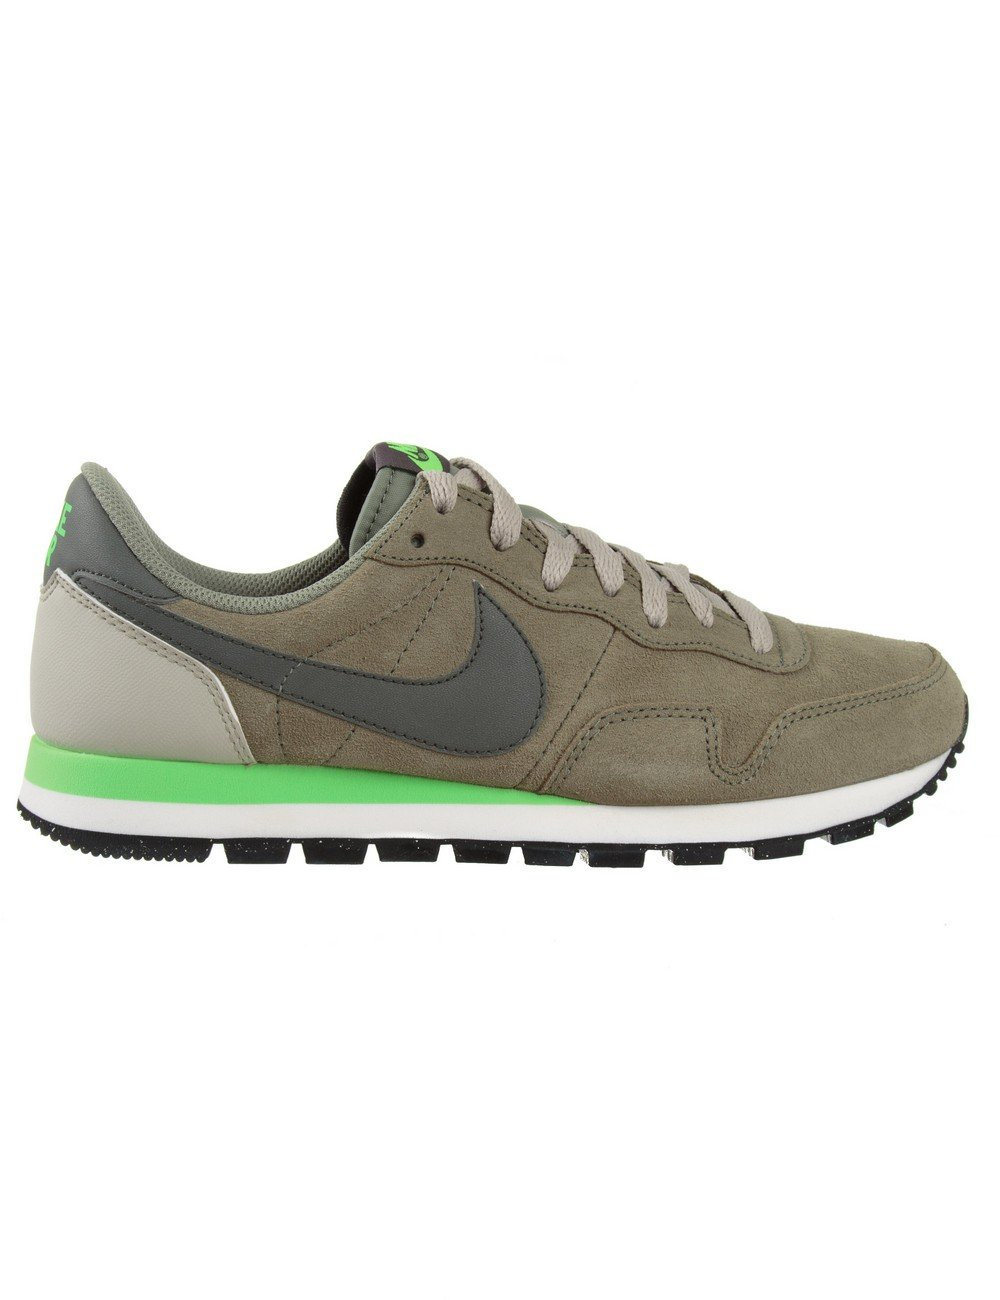 noir screen supra - Nike Air Pegasus 83 LTR Shoes - Jade Stone/River Rock - Nike from ...